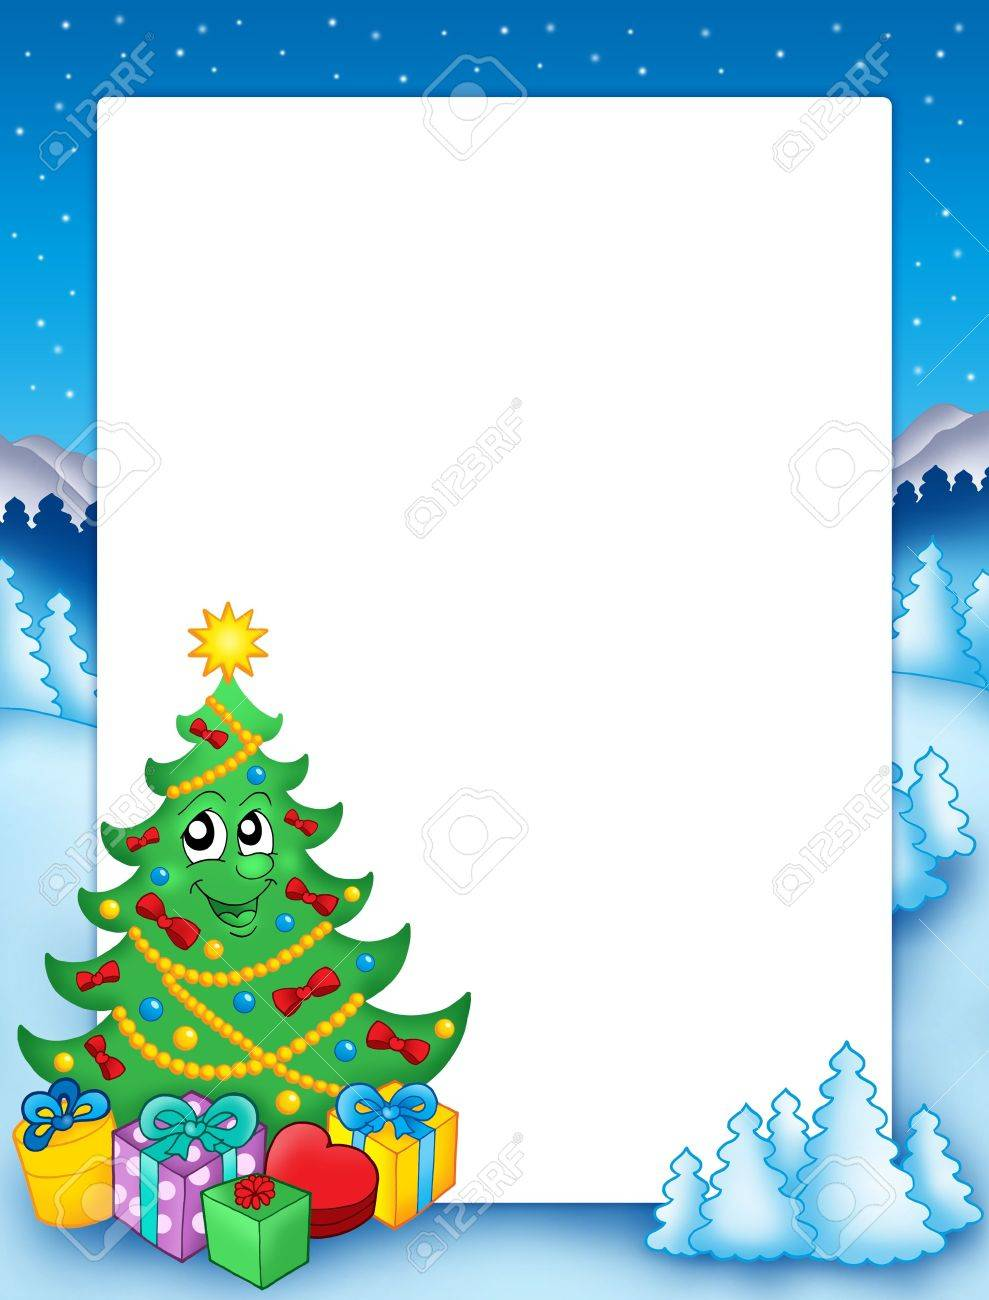 Christmas frame with tree 1 - color illustration. Stock Illustration - 5665258